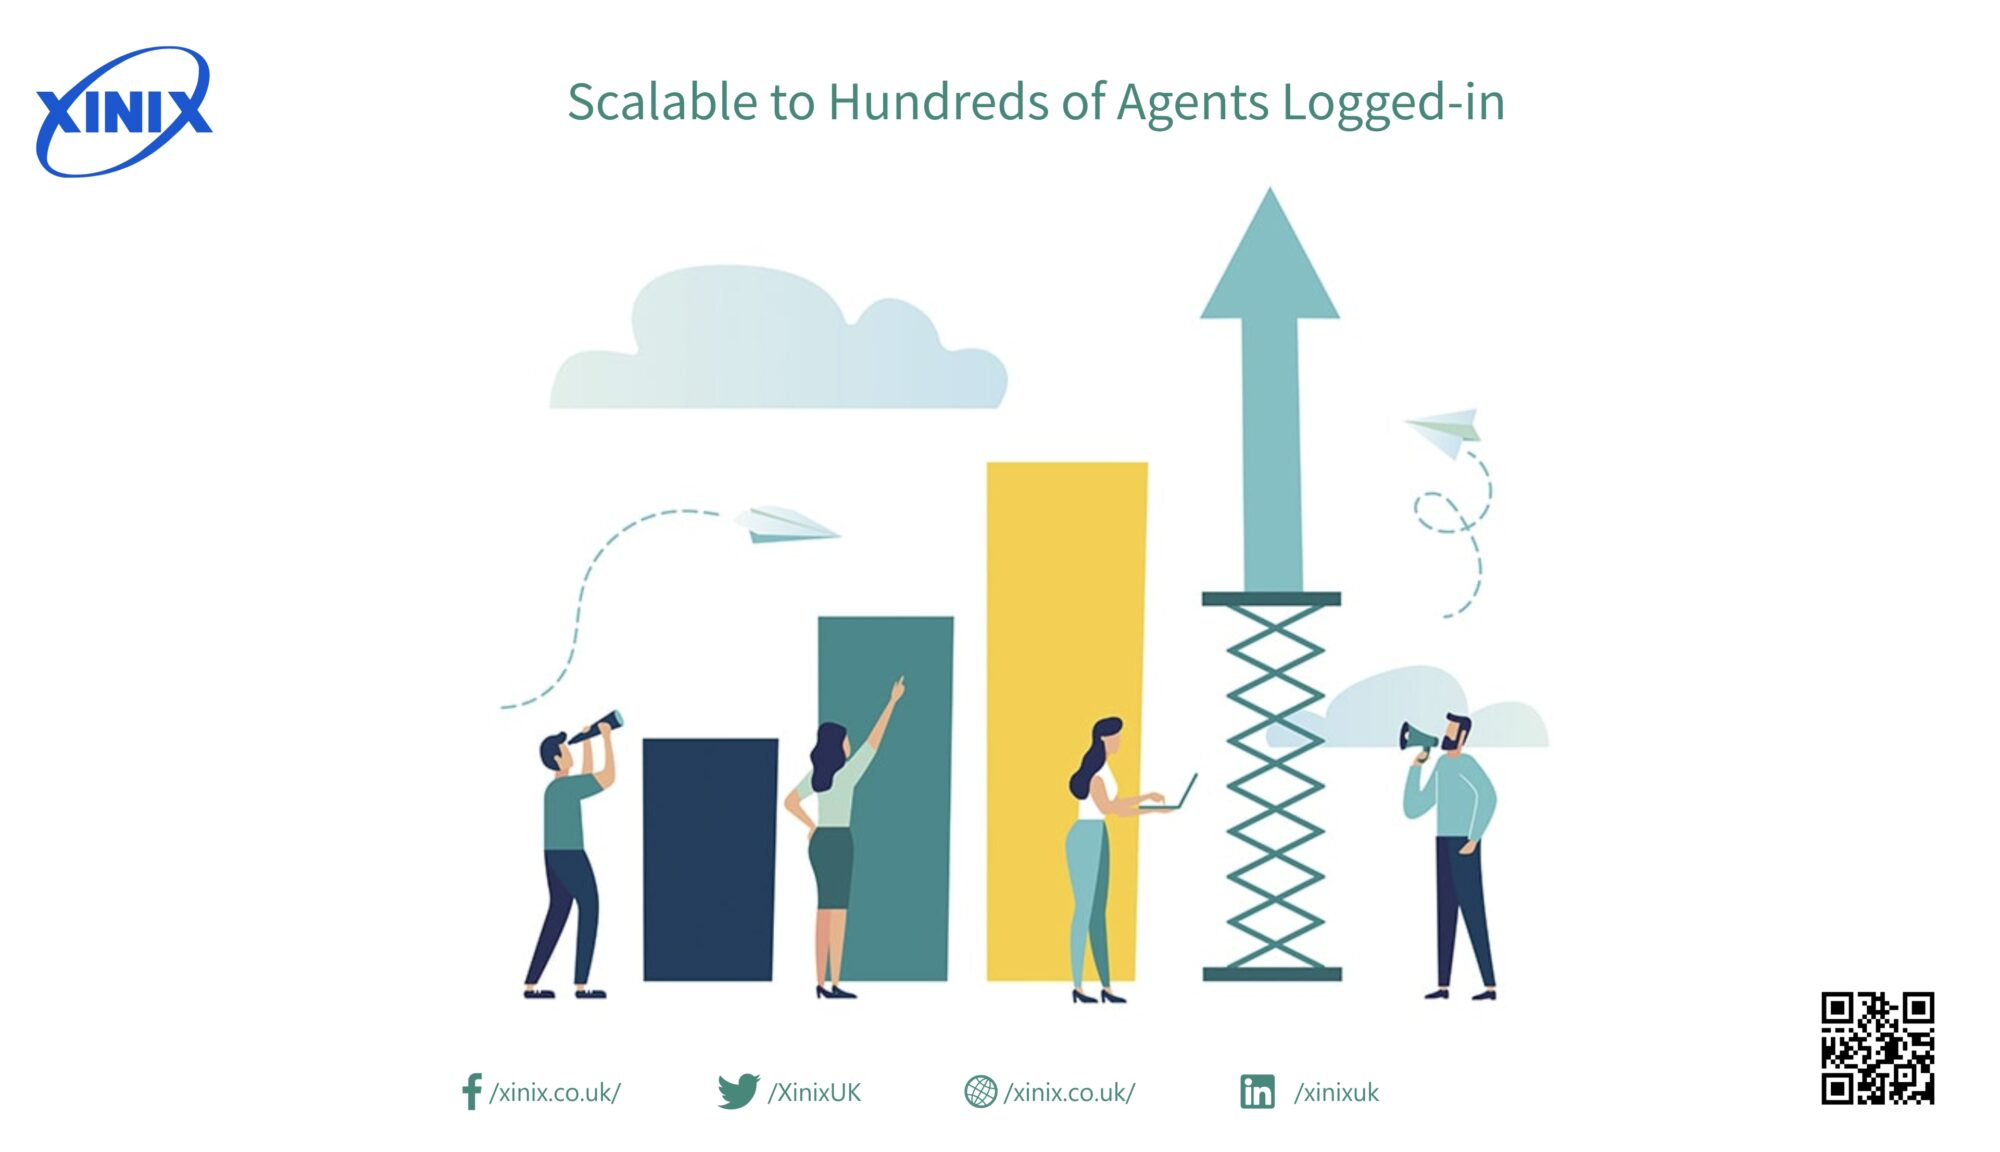 Scalable to Hundreds of Agents Logged-in